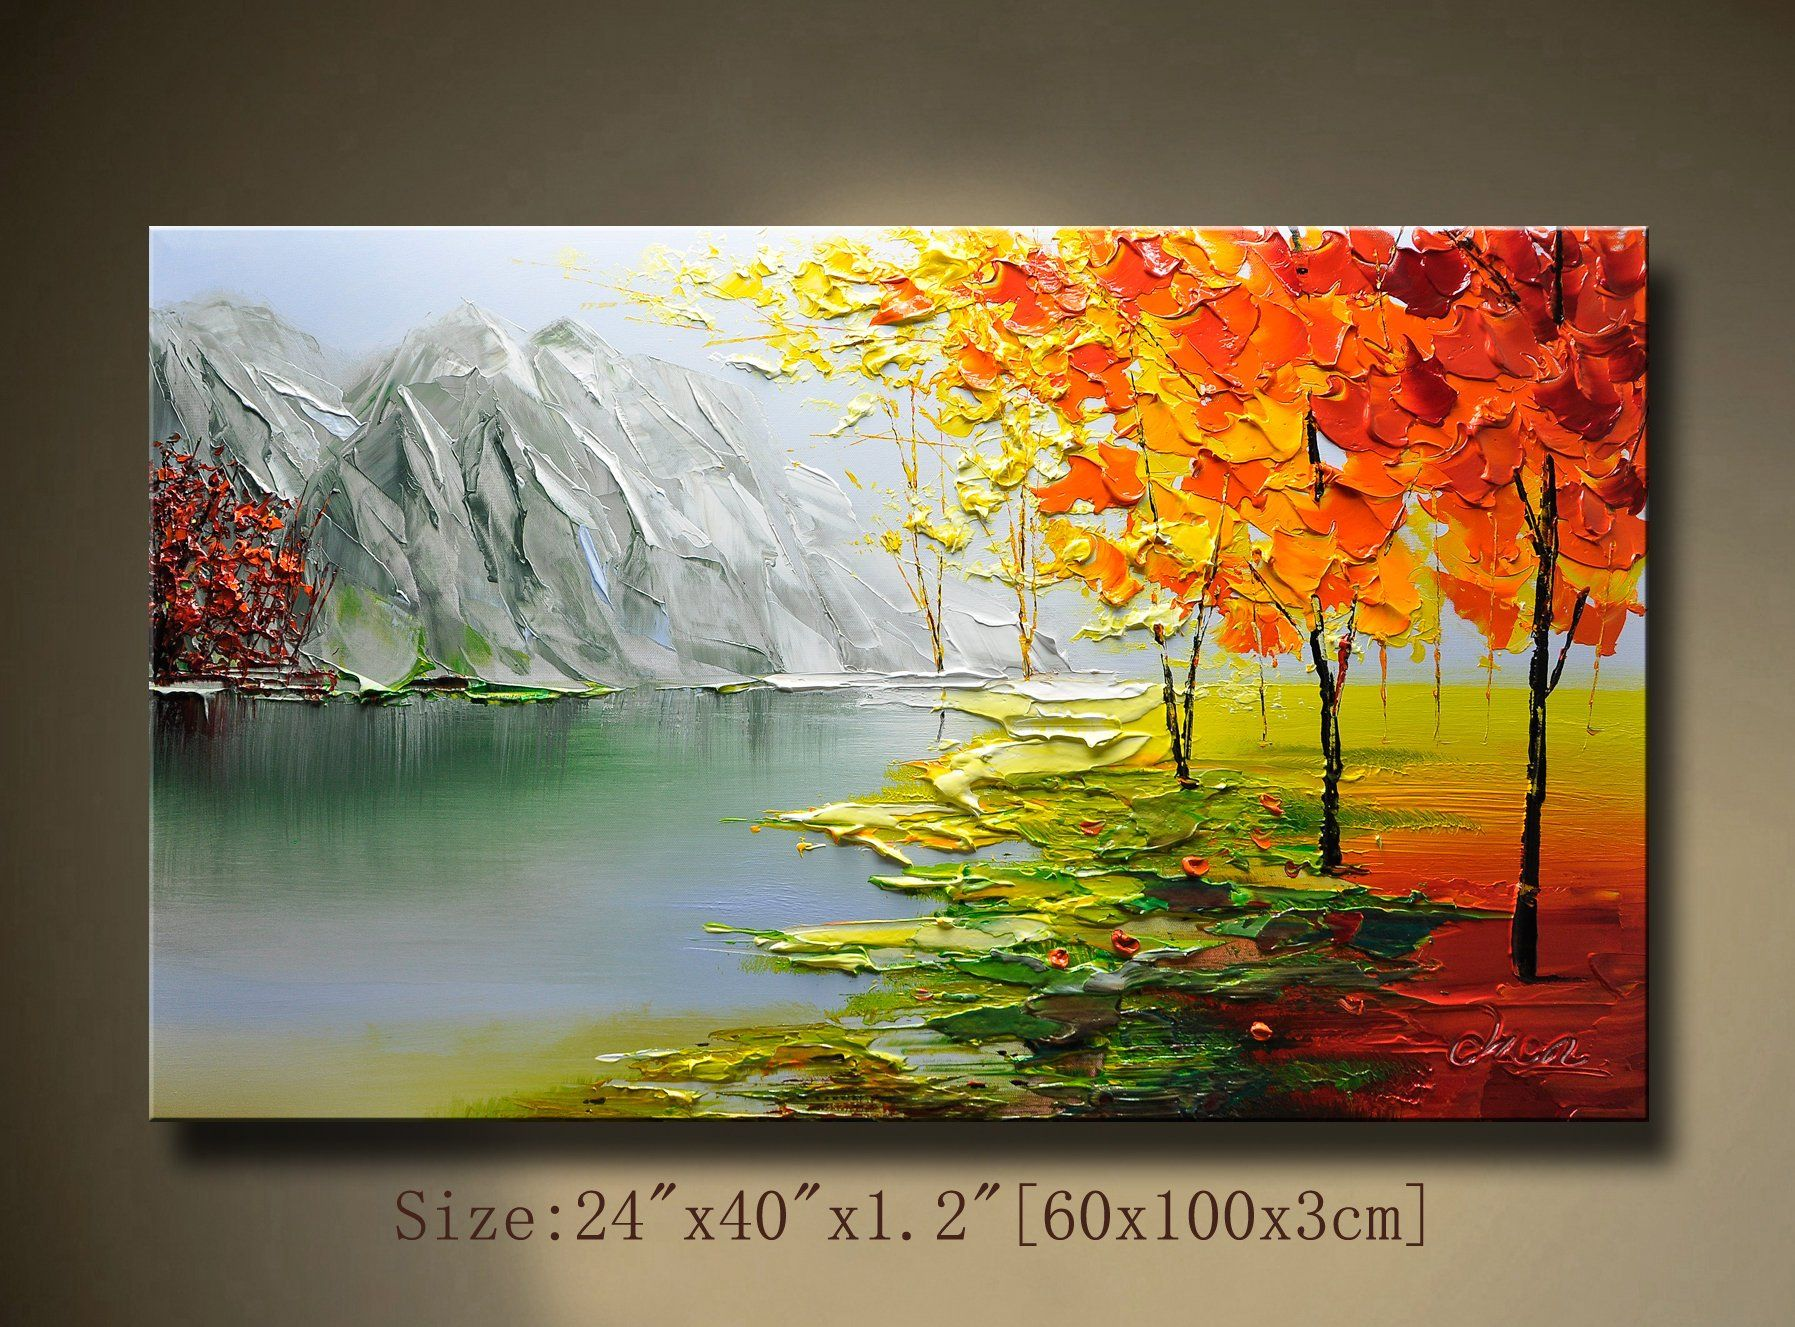 Abstract Wall Painting Palette Knife Abstract Painting Textured Painting Landscape Painting Colourful Tree Painting On Canvas By Chen Ff Abstract Wall Painting Landscape Paintings Texture Painting